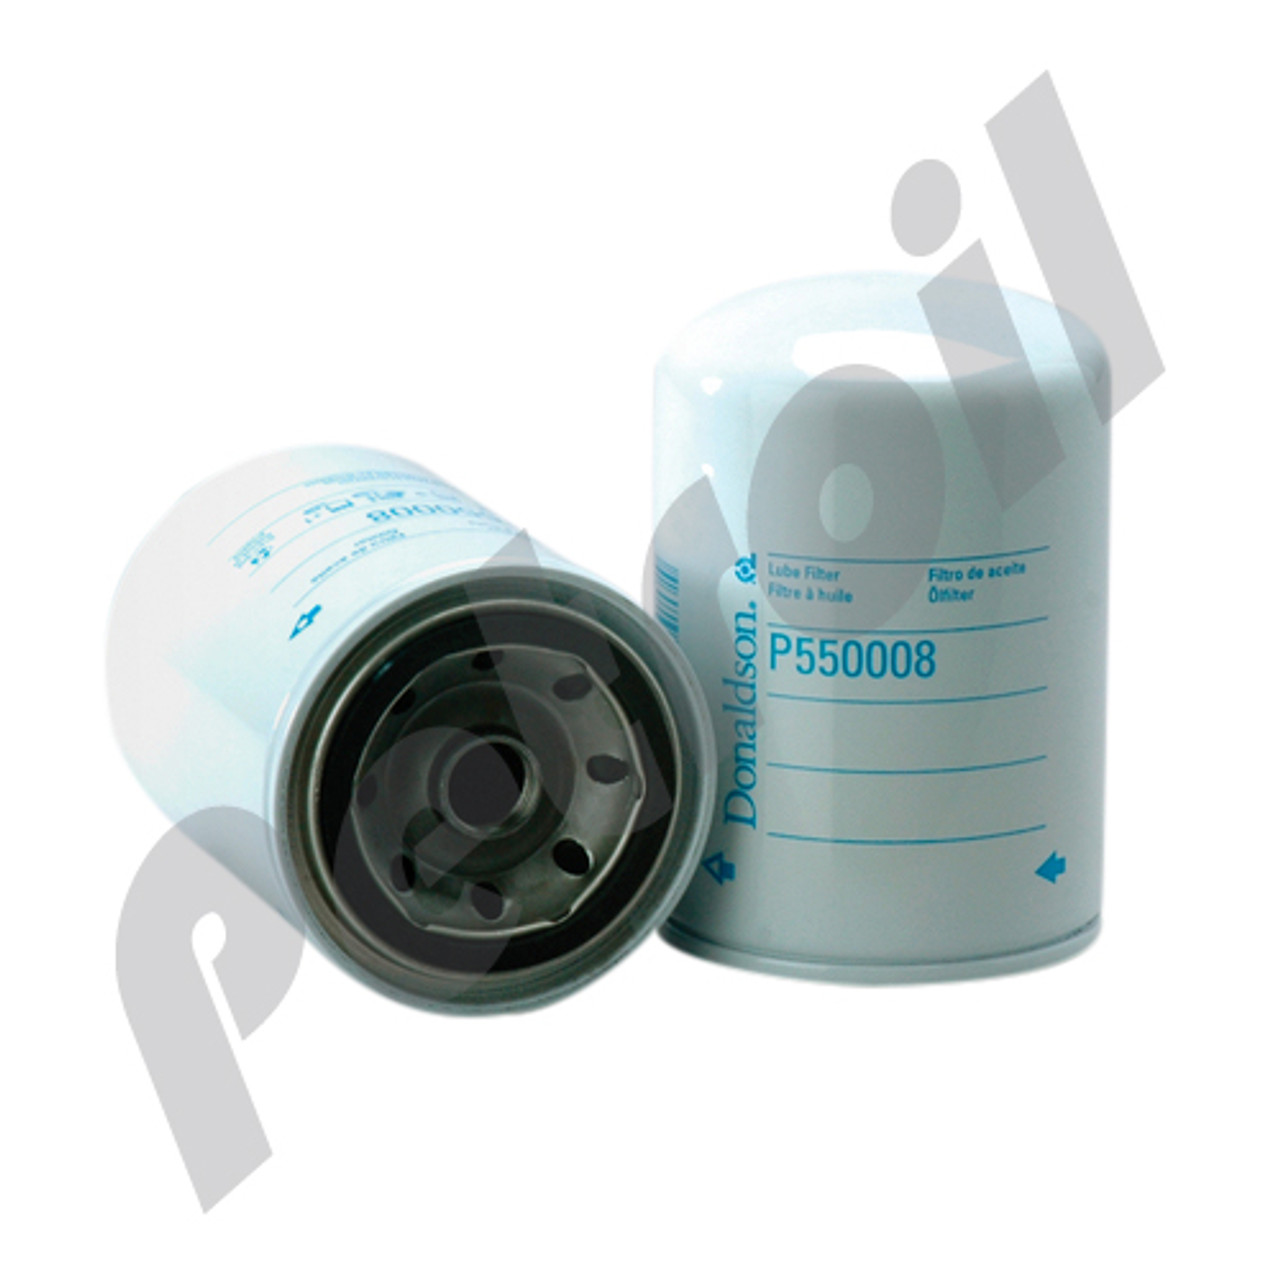 Donaldson P551311 Fuel Filter Spin-on